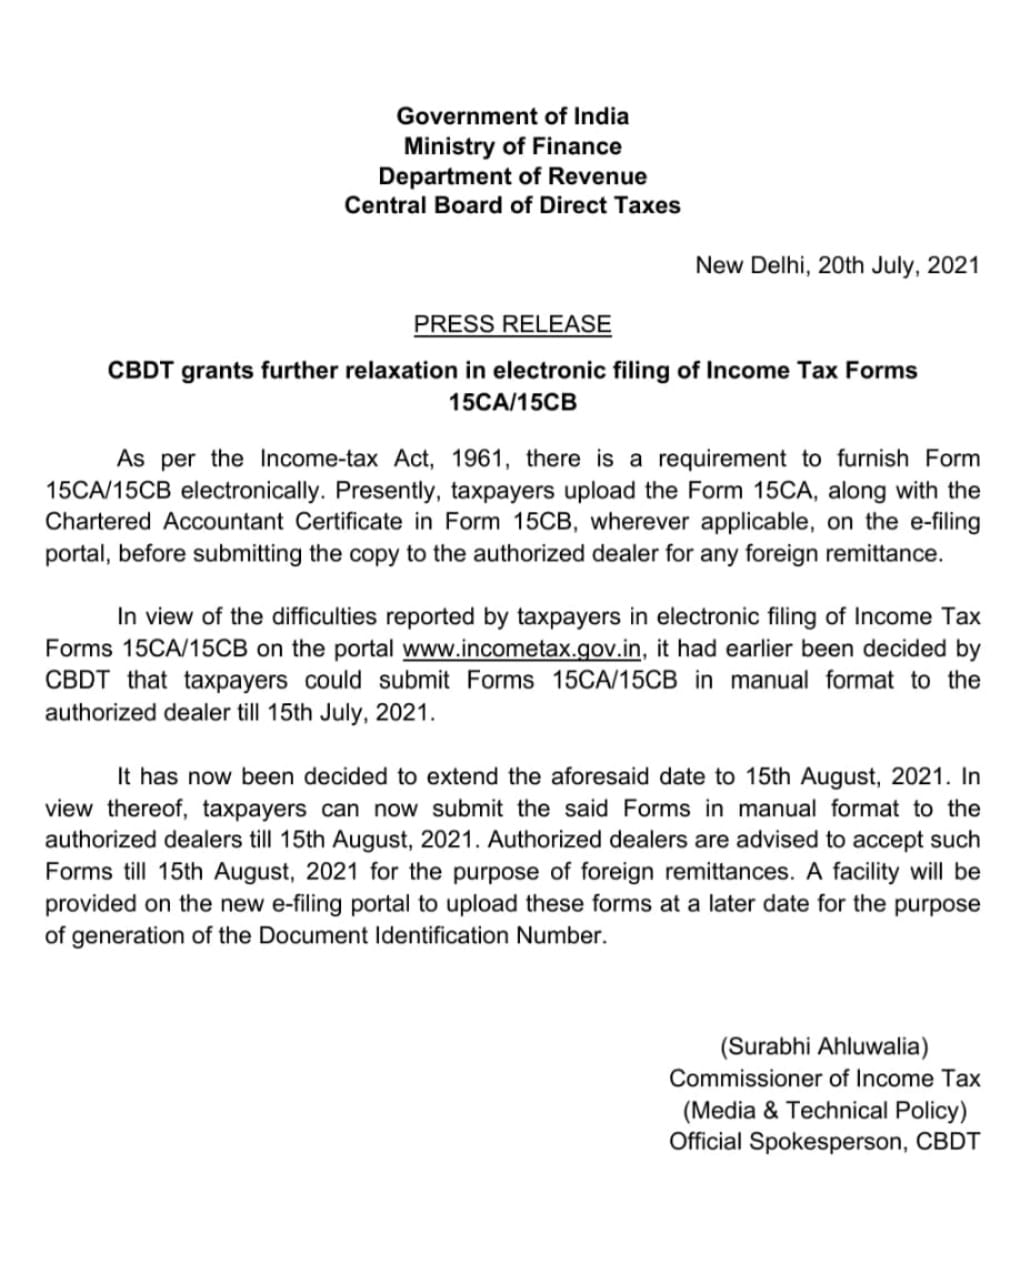 CBDT grants further relaxation in electronic filing of Income Tax Forms 15CA/15CB